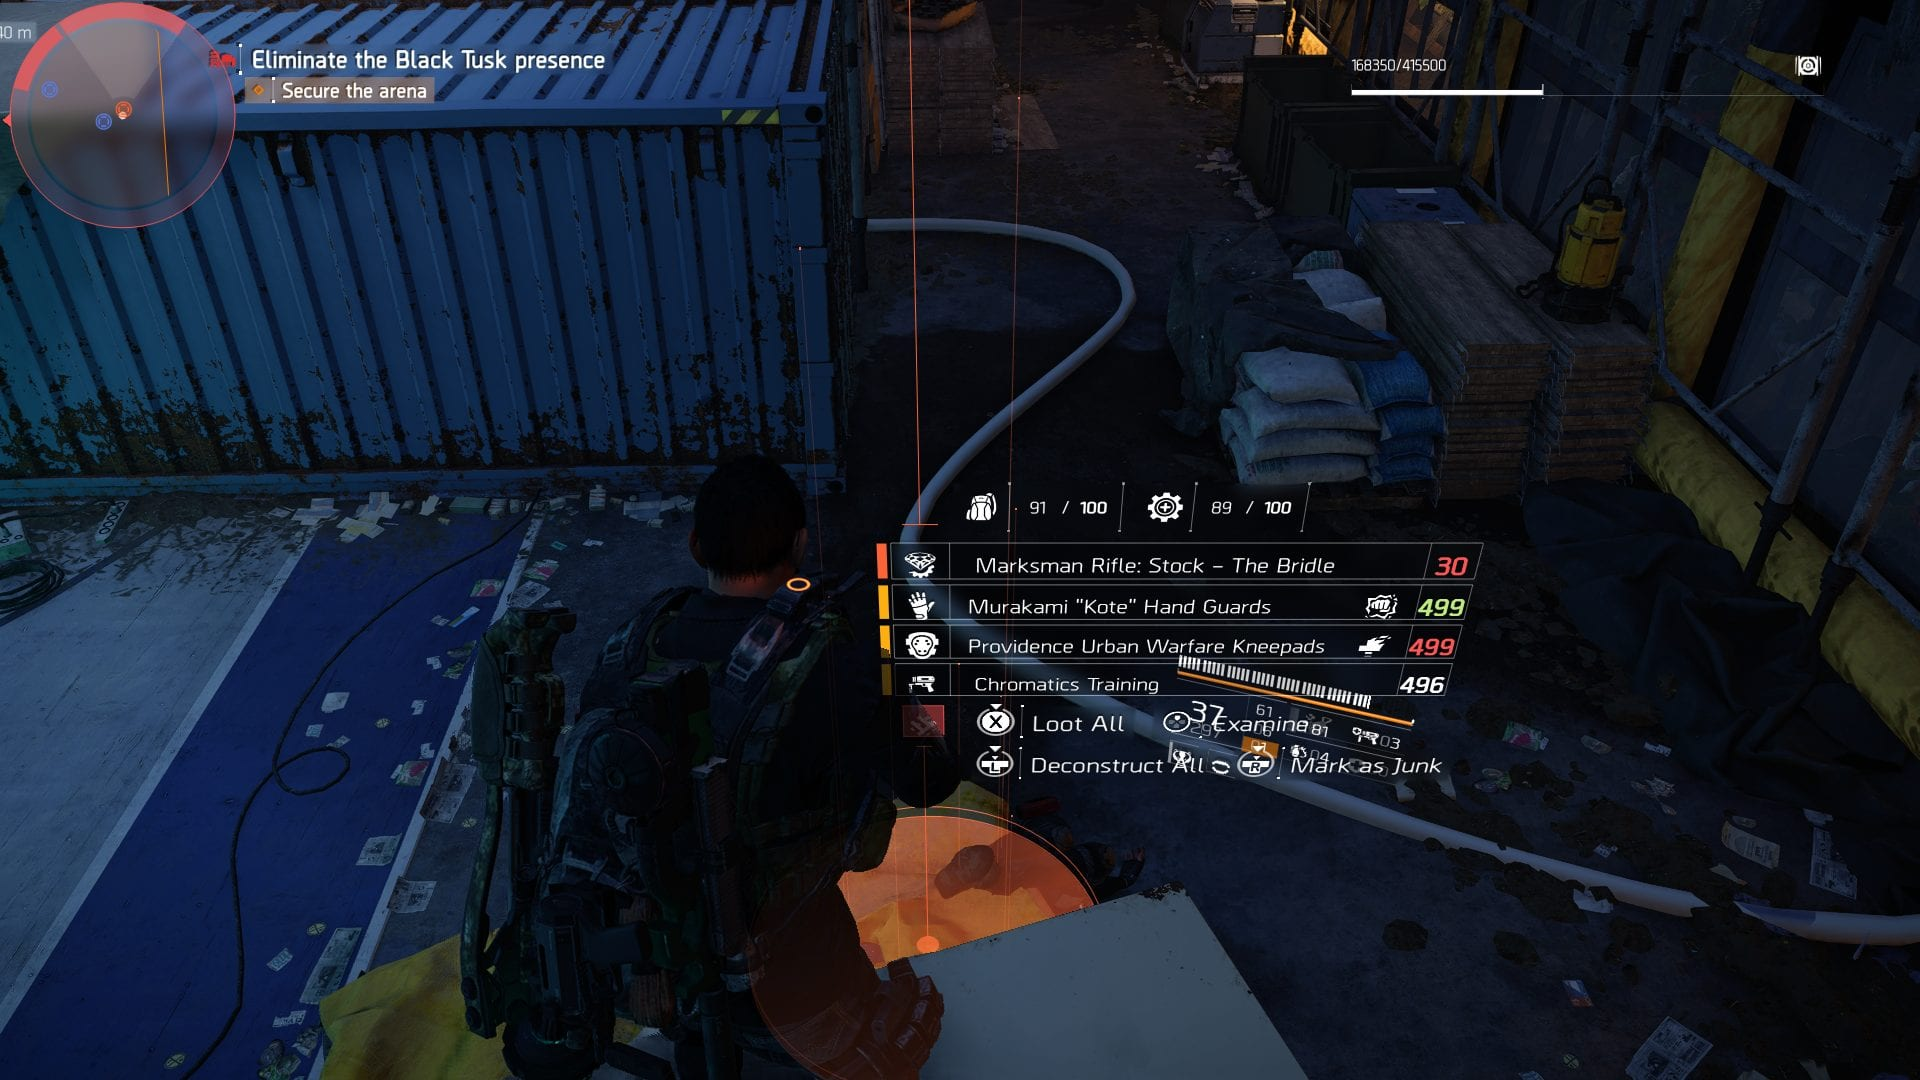 How to obtain the Exotic Marksman Rifle, 'Nemesis', in The Division